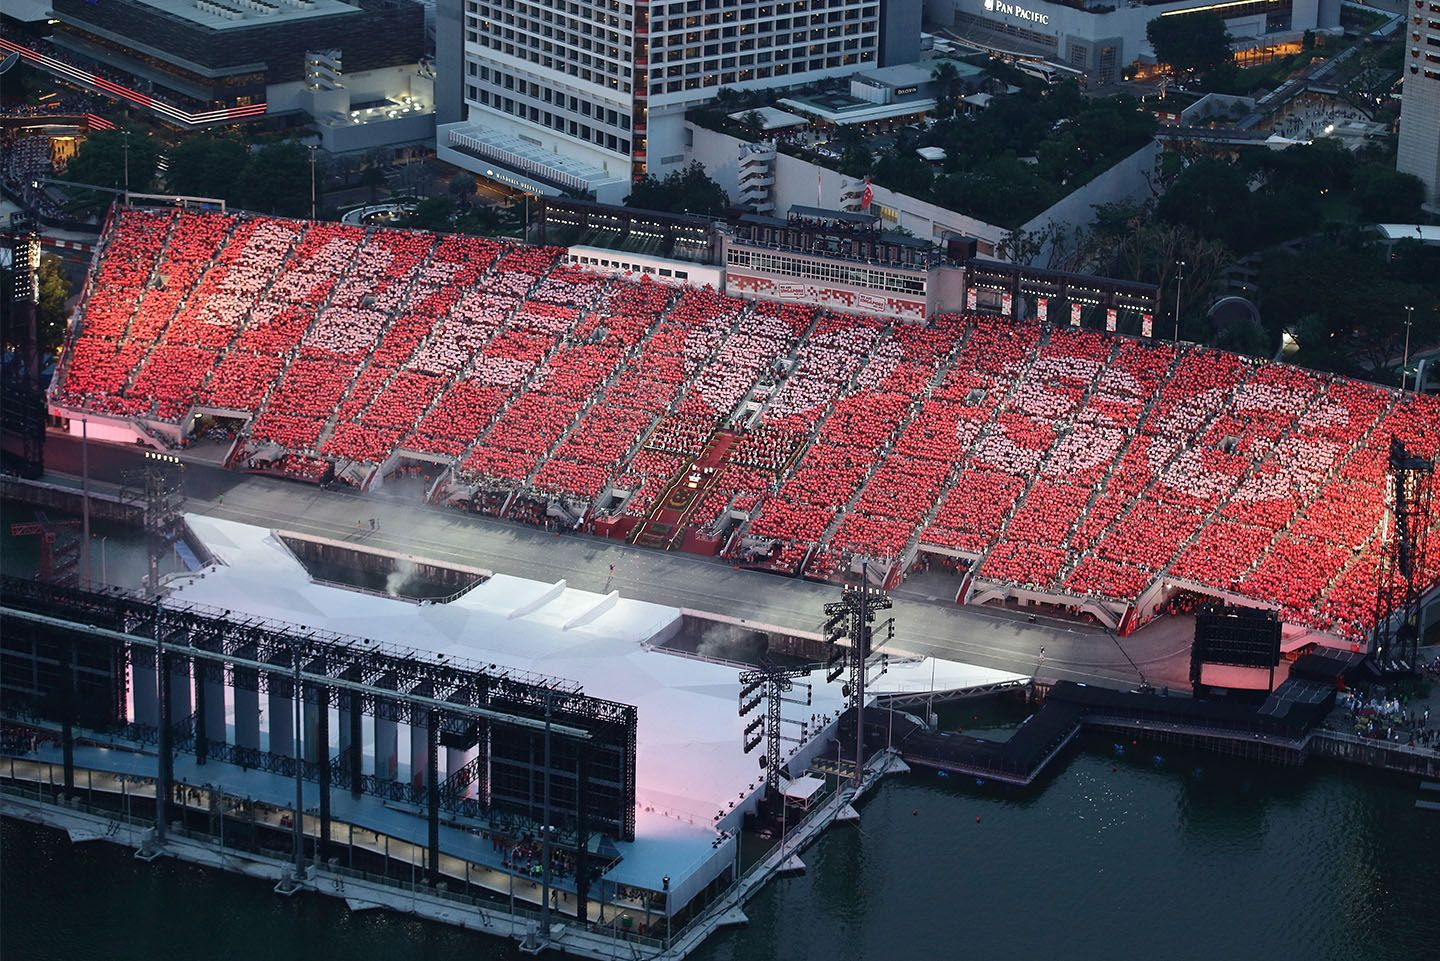 A general view during the National Day Parade. (Photo: Suhaimi Abdullah/Getty Images)